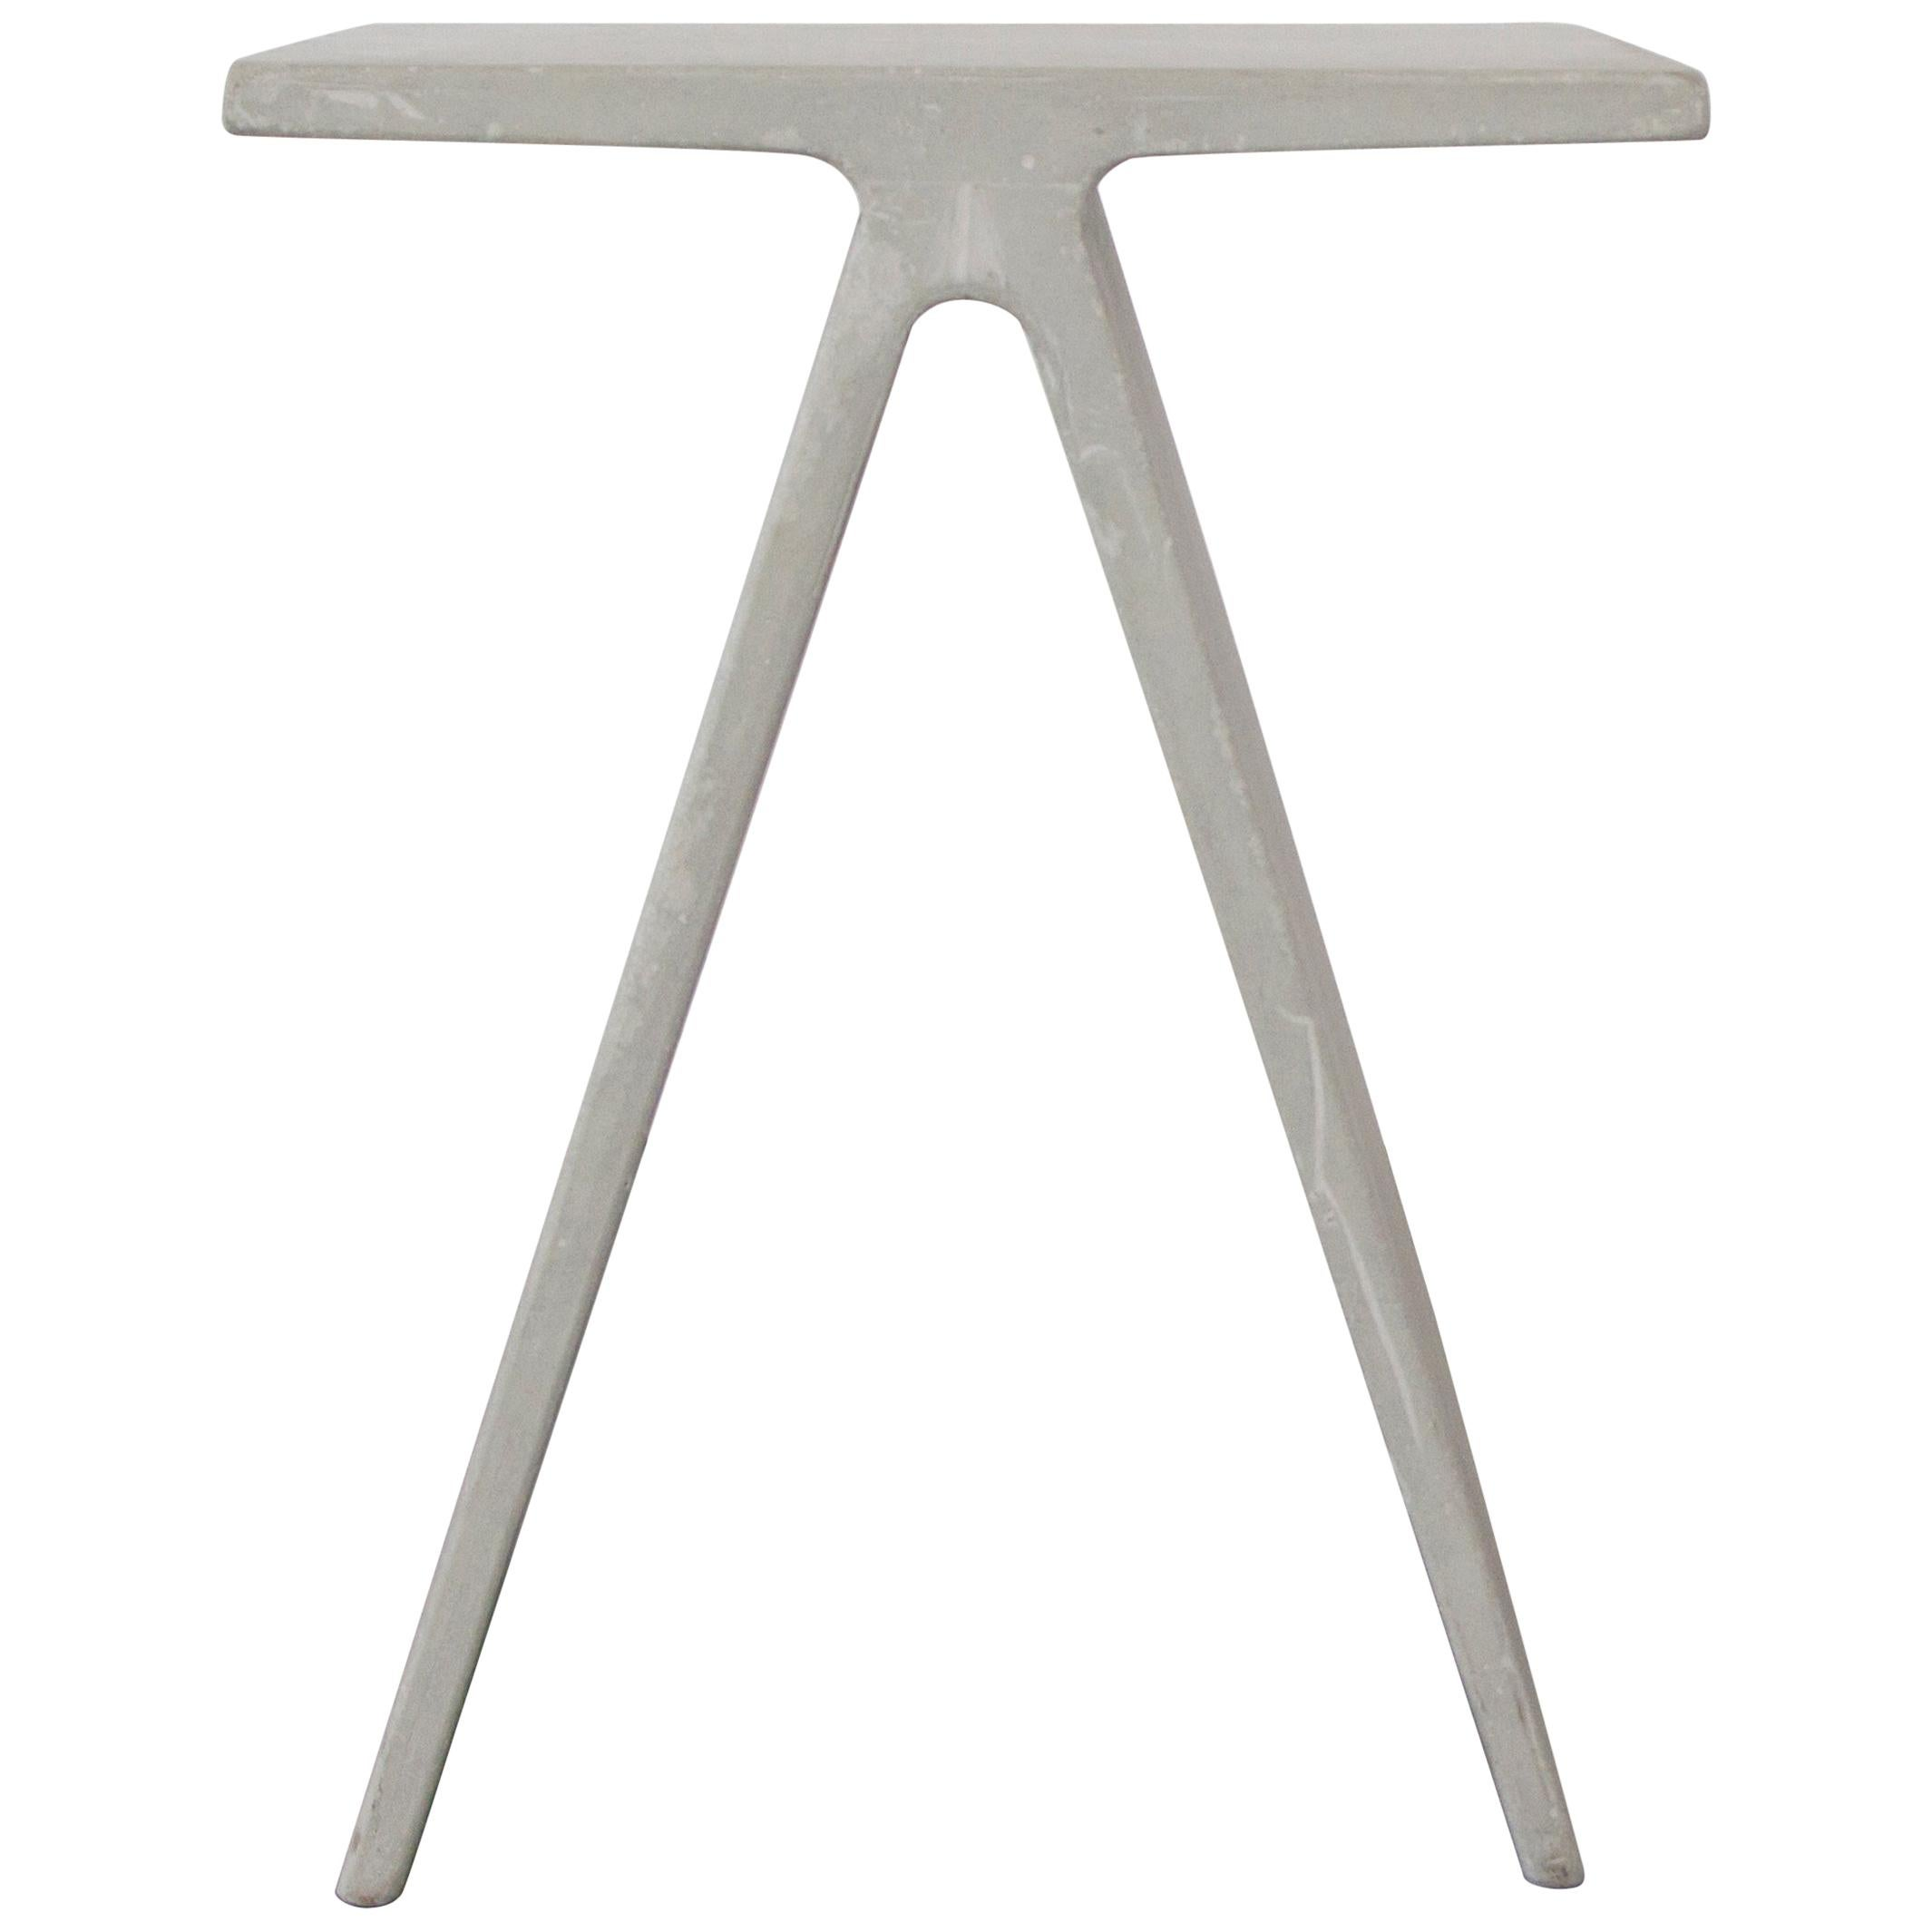 Alpha Q End Table or Stool, White Concrete for Indoor or Outdoor by Mtharu